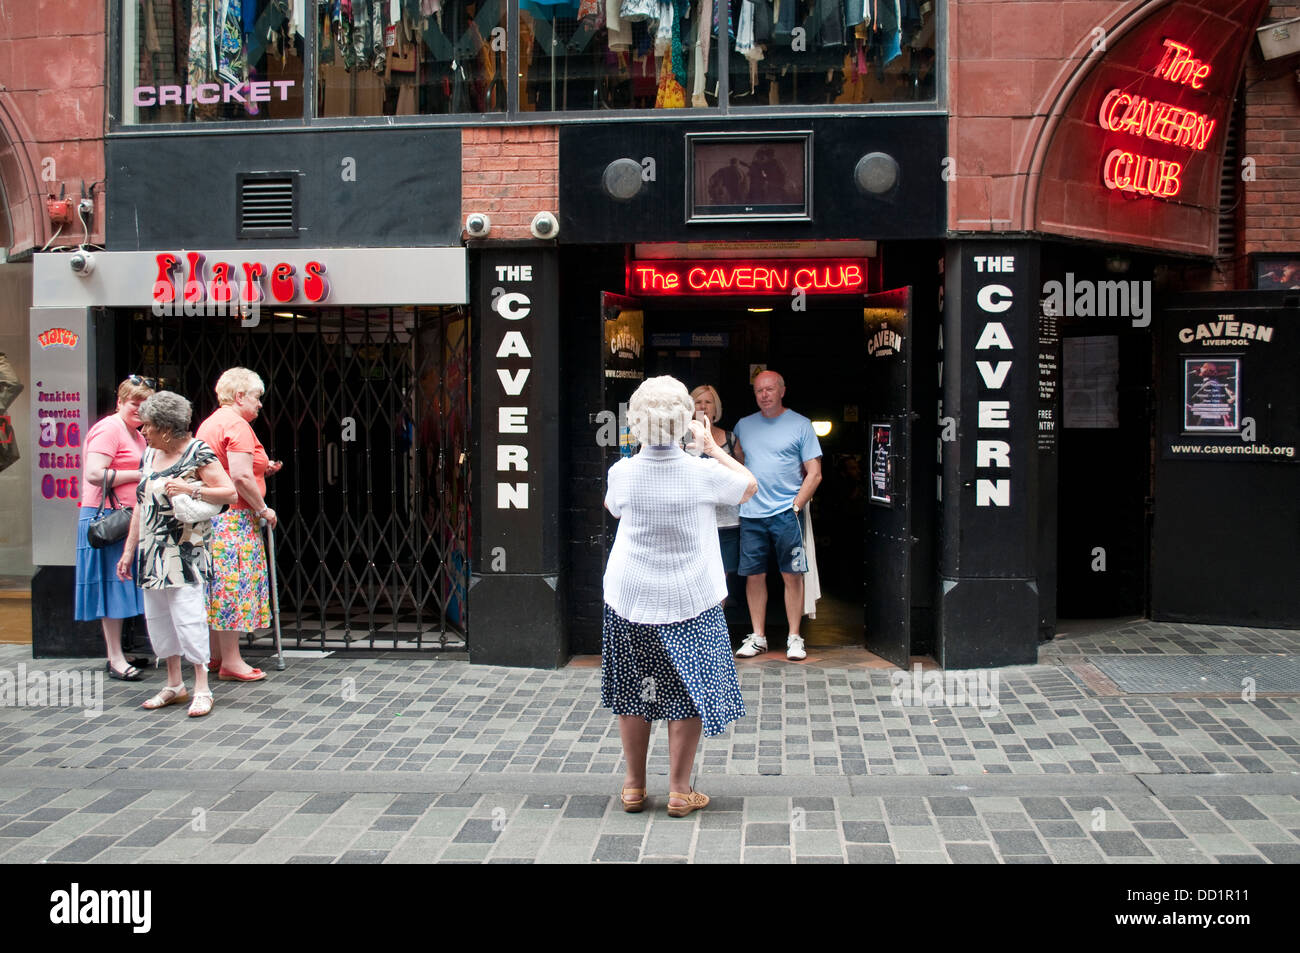 Elderly lady taking a photo at The Cavern Club, Liverpool, UK - Stock Image